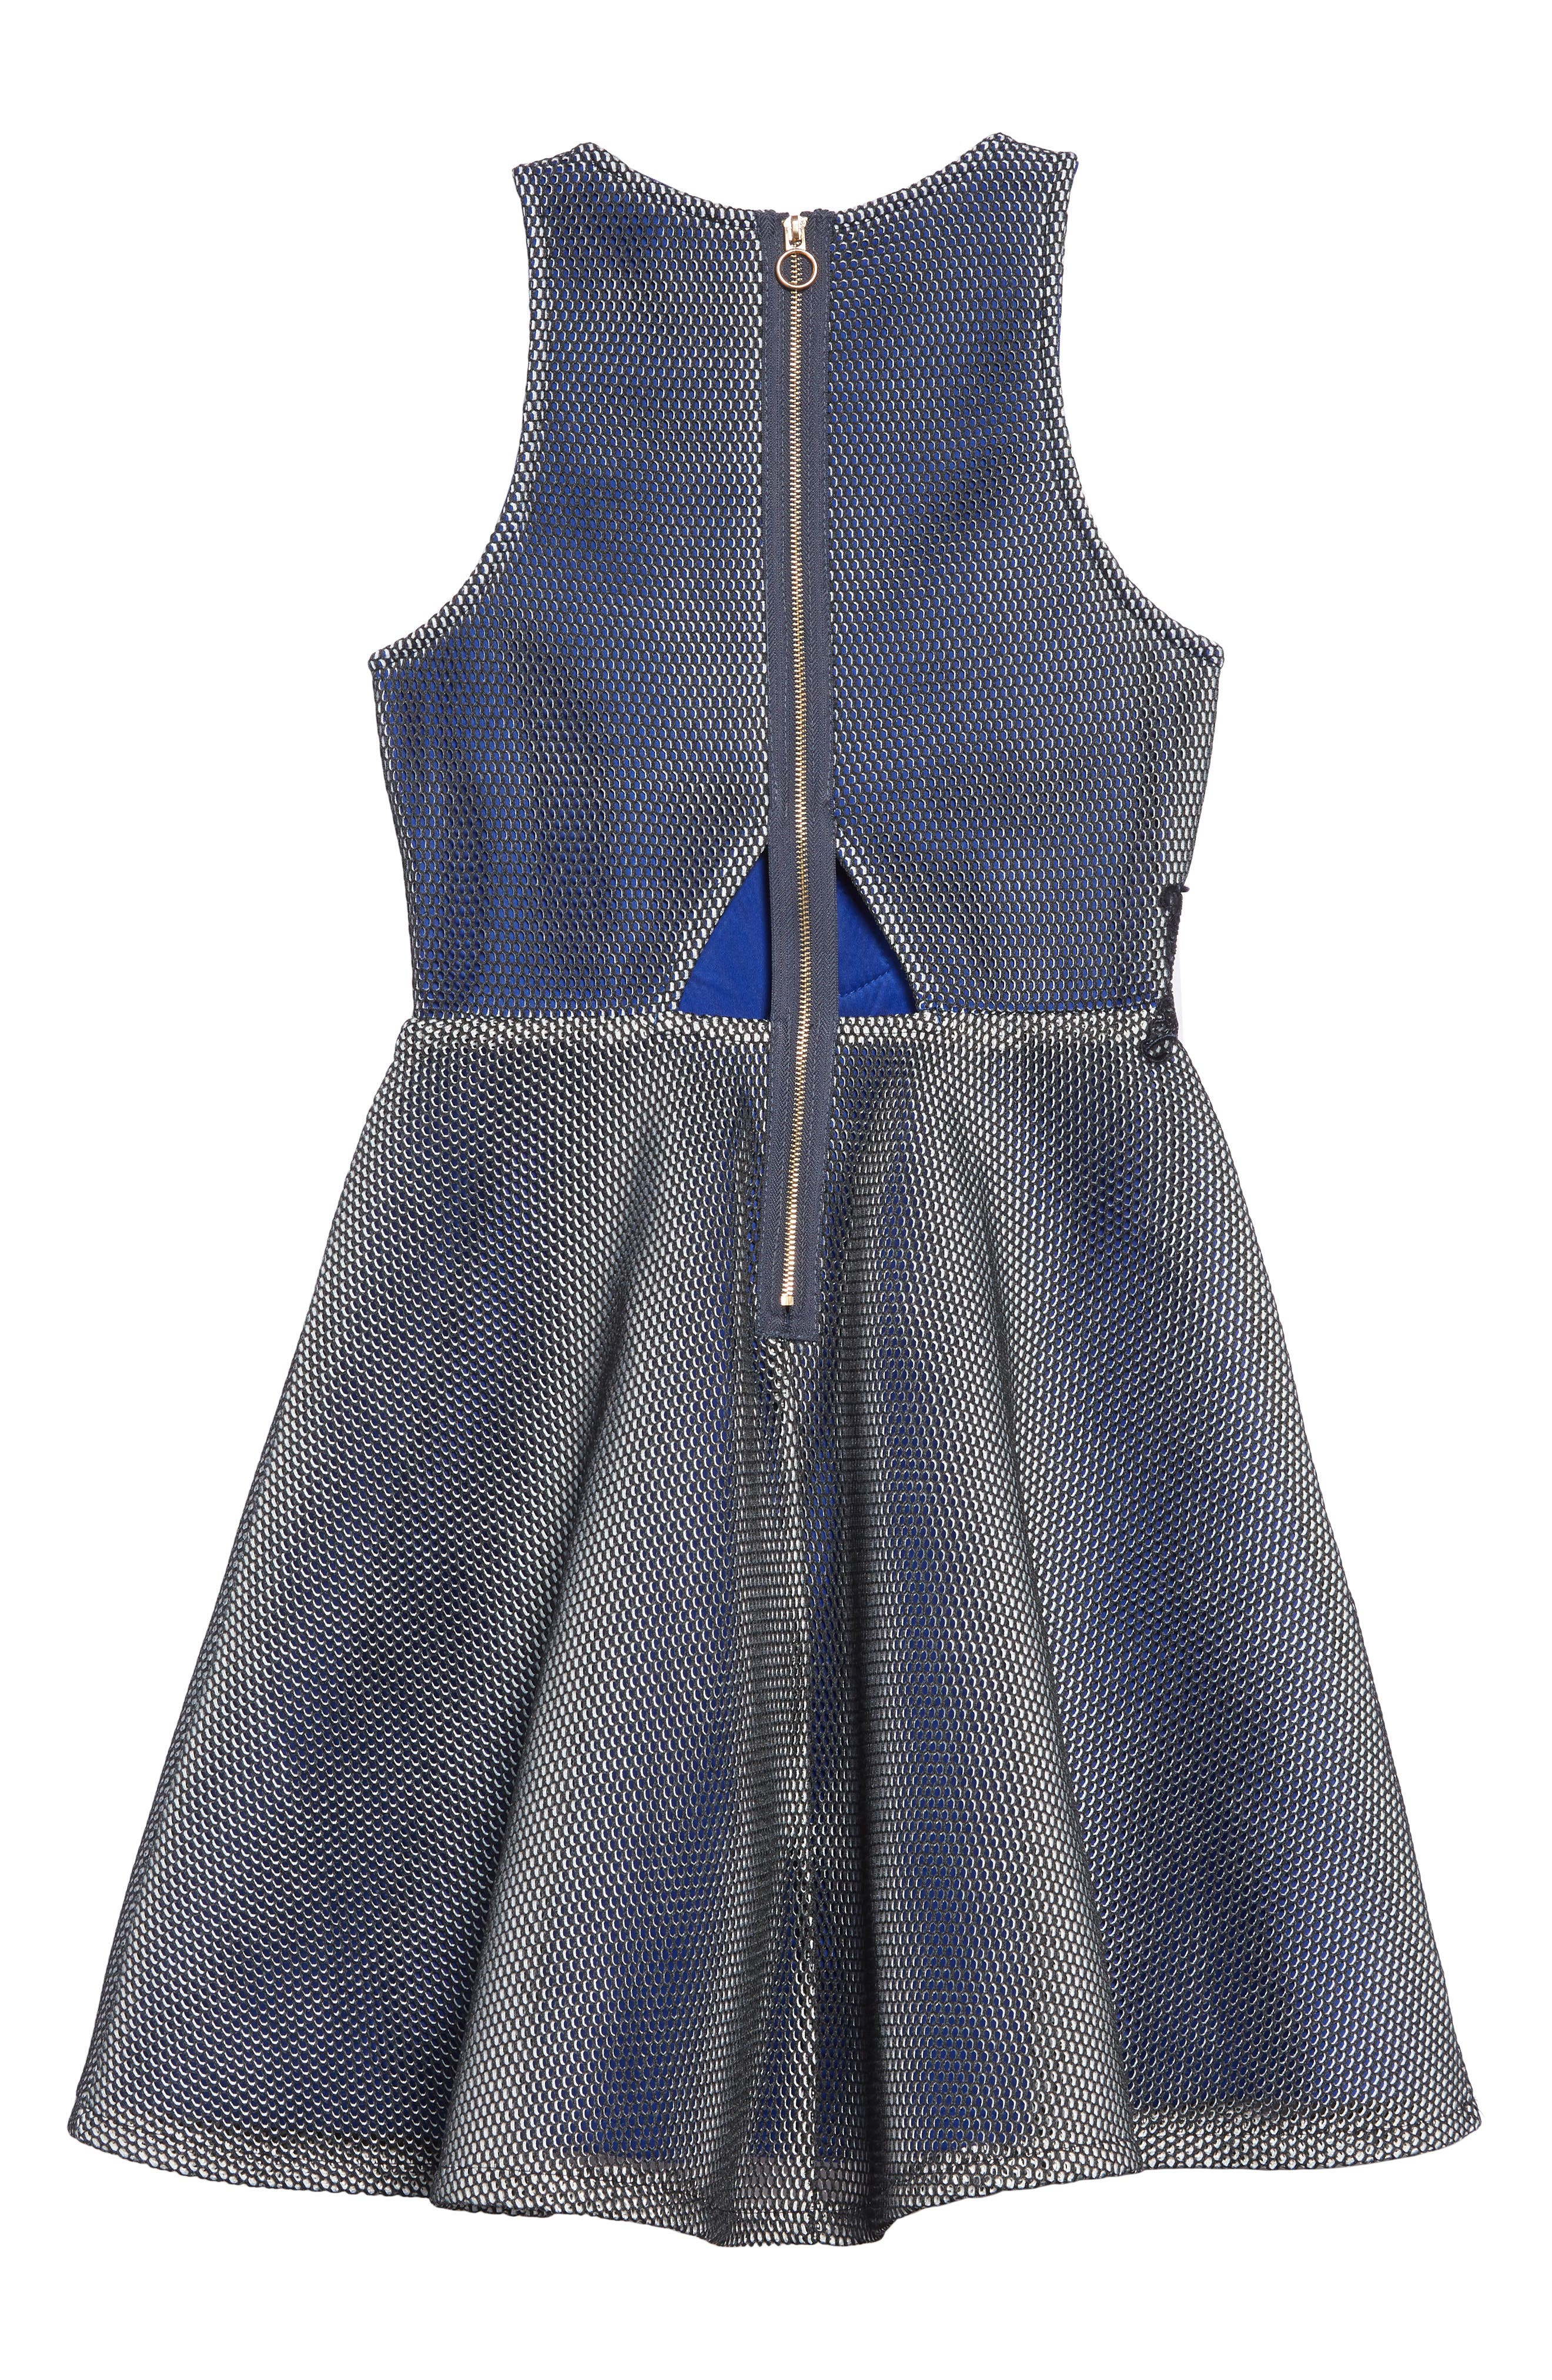 Embroidered Techno Mesh Dress,                             Alternate thumbnail 2, color,                             NAVY